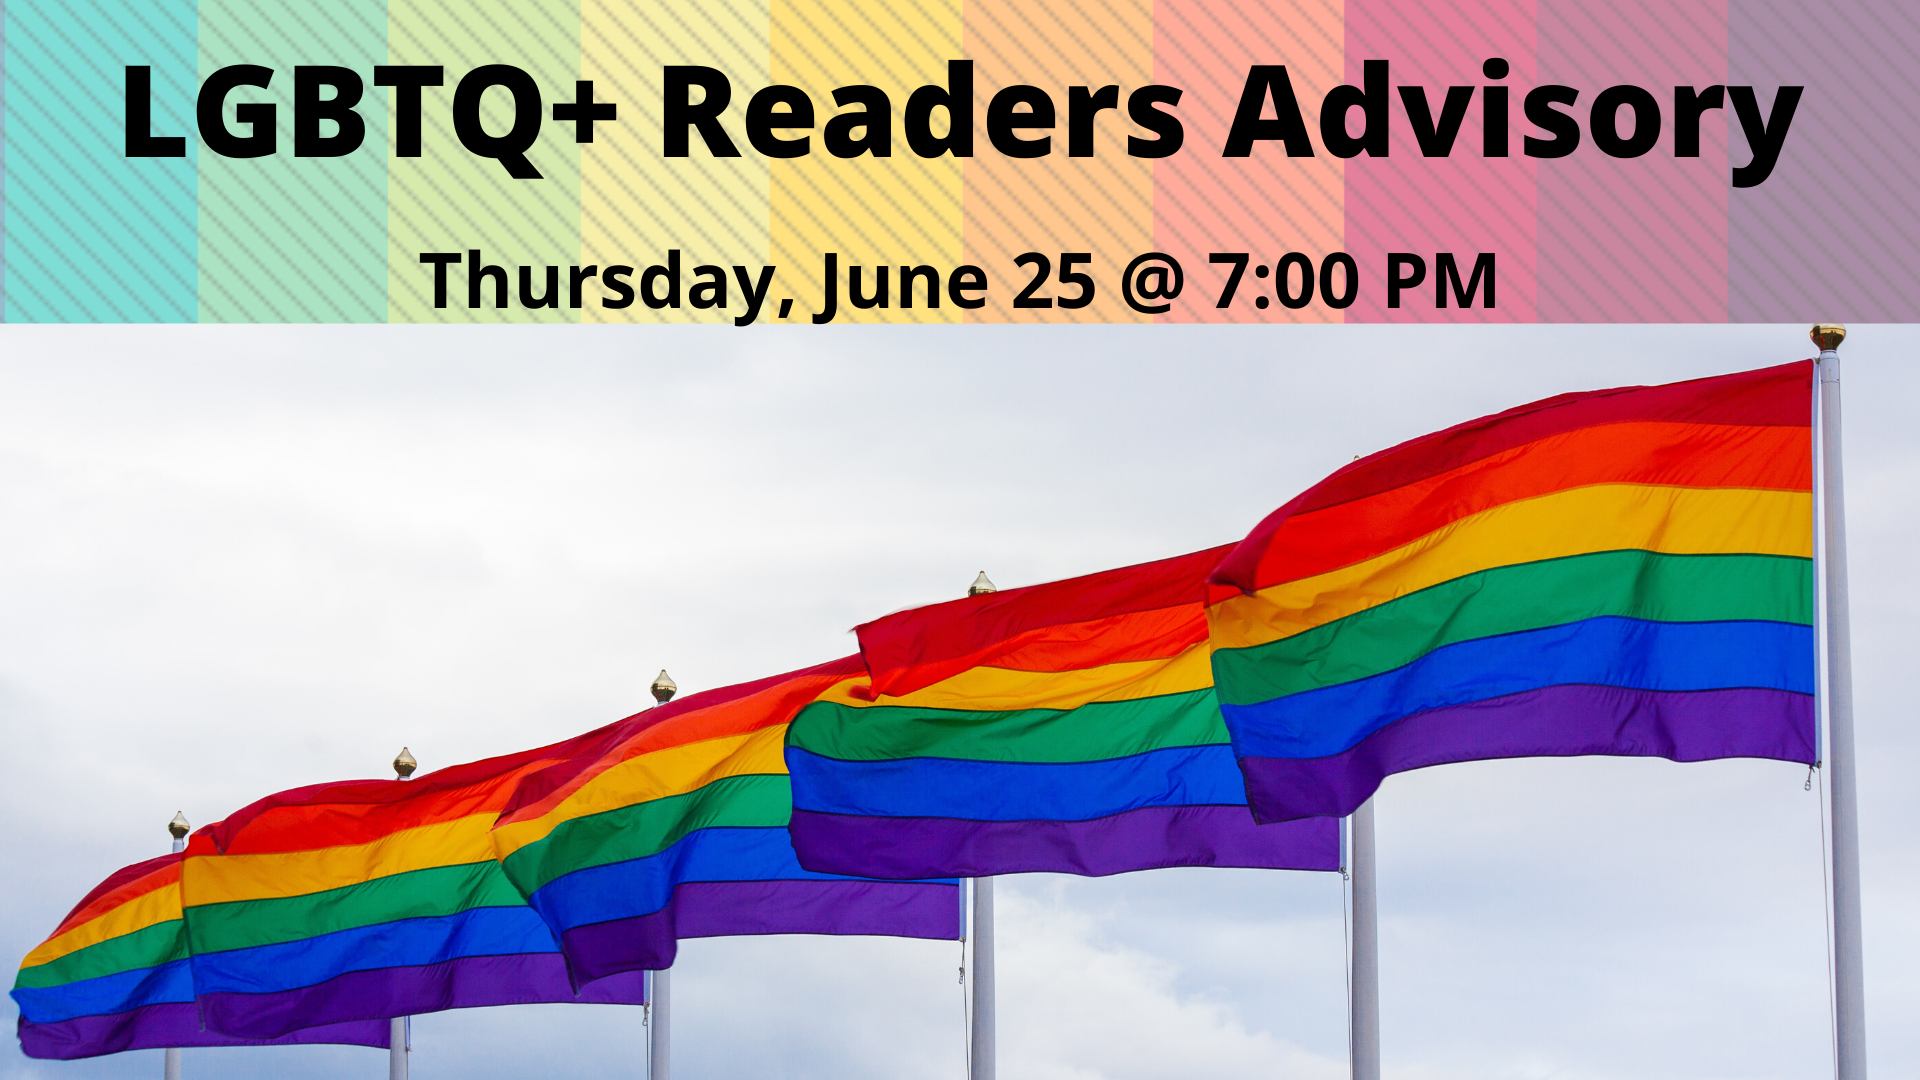 LGBTQ+ Readers Advisory